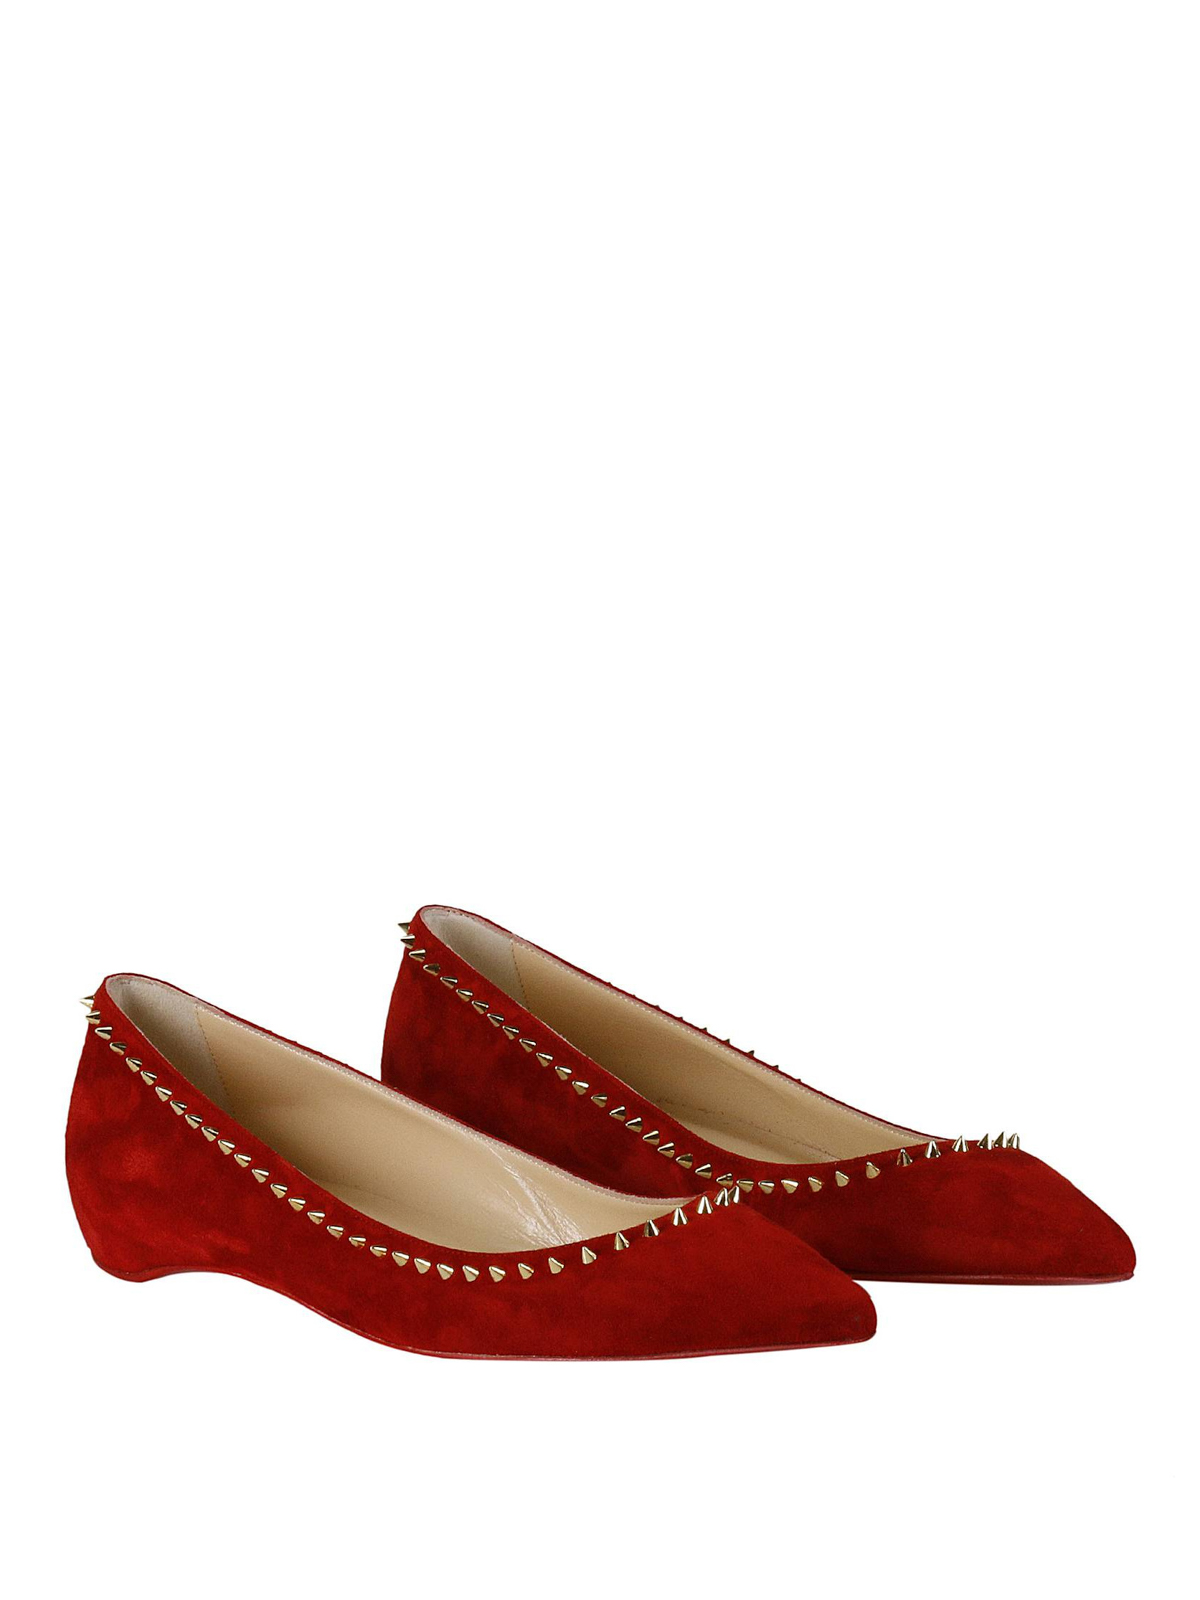 2b83688fc384 CHRISTIAN LOUBOUTIN  flat shoes online - Anjalina spike trim red suede flats